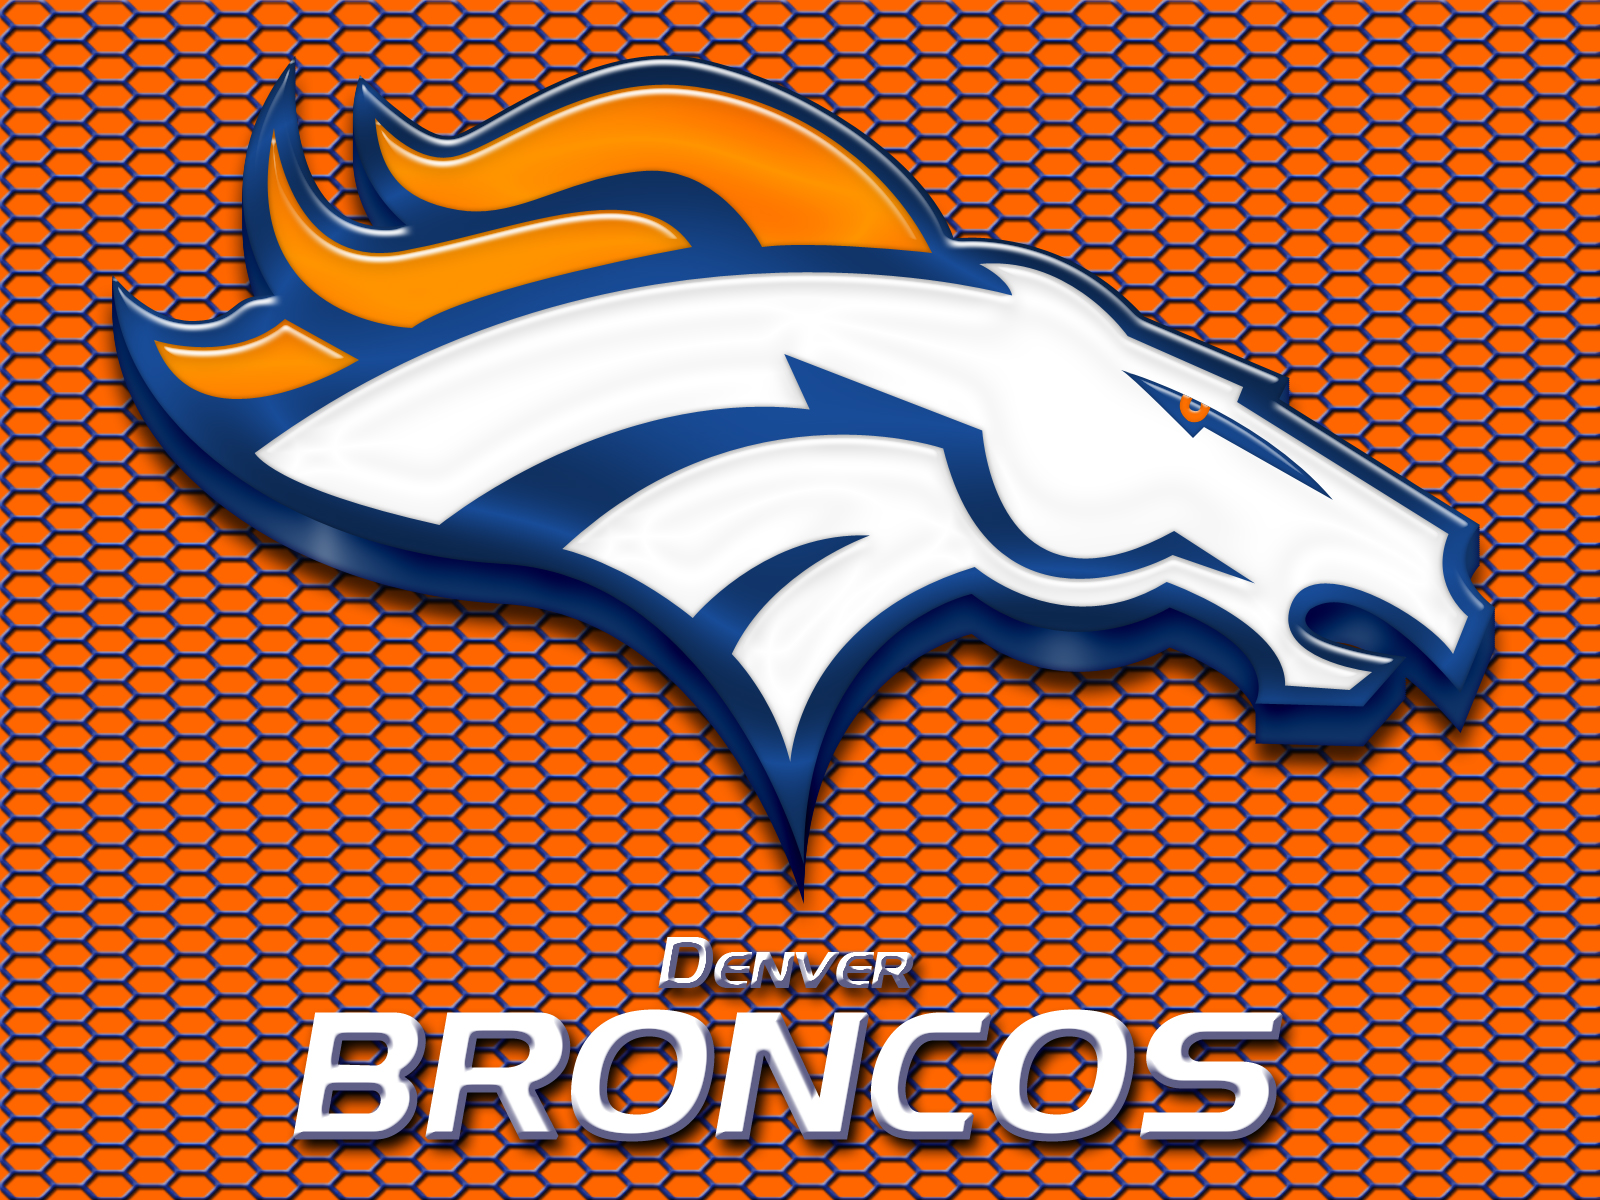 Hope you like this Denver Broncos wallpaper background in high 1600x1200